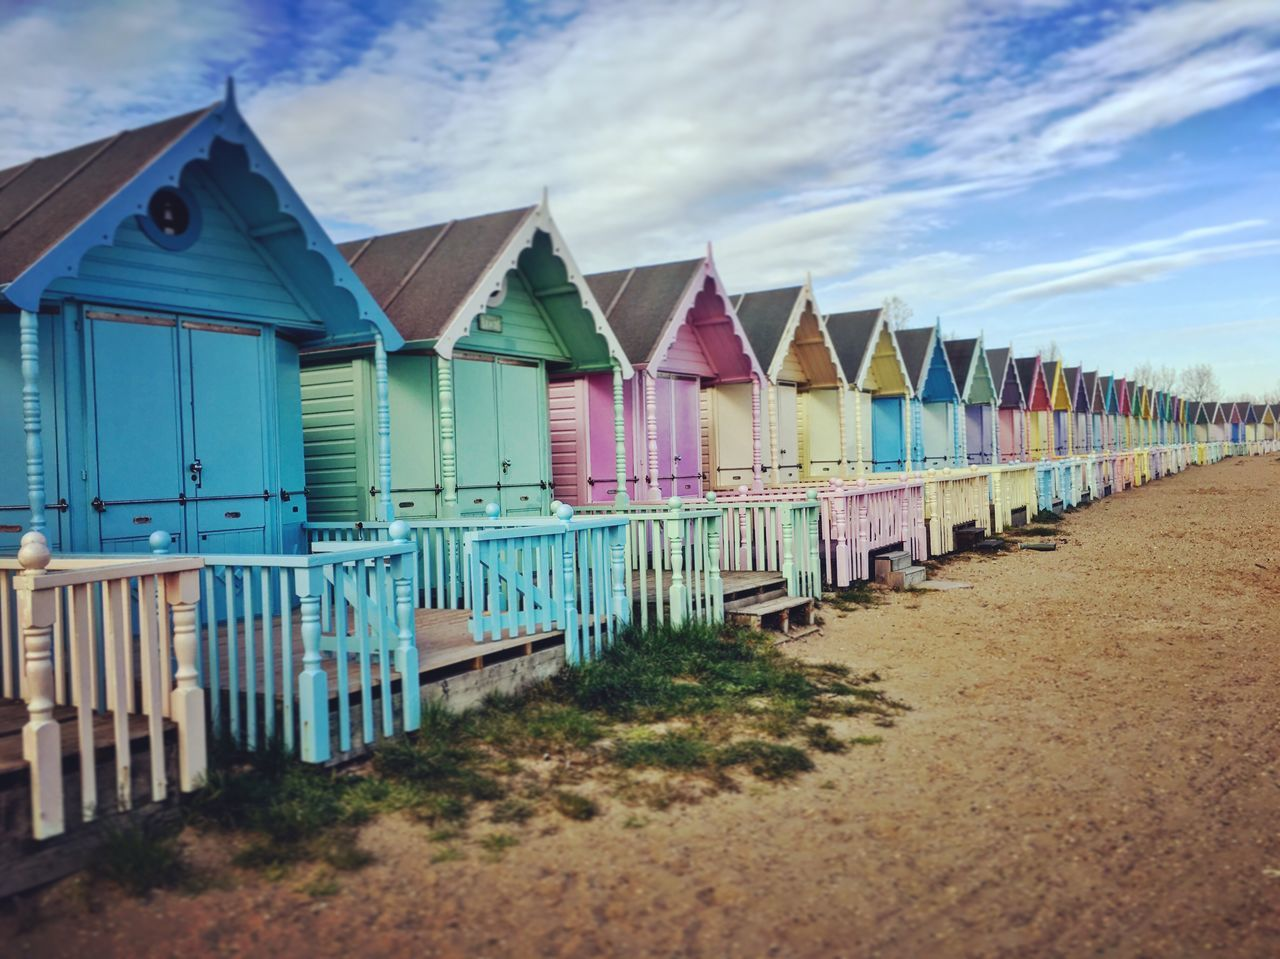 Pastel coloured beach huts Beach Beach Photography Beach Huts Beachphotography Beach Life Beach Day Getty & Eyeem Color Explosion Colorful Colors Gettyimages EyeEm Gallery Getting Inspired Getty X EyeEm Images Getty+EyeEm Collection Gettyimagesgallery EyeEm Best Shots EyeEm Best Edits Eye4photography  EyeEmBestPics Getty Images Iphonephotography IPhoneography Iphoneonly IPhone Photography